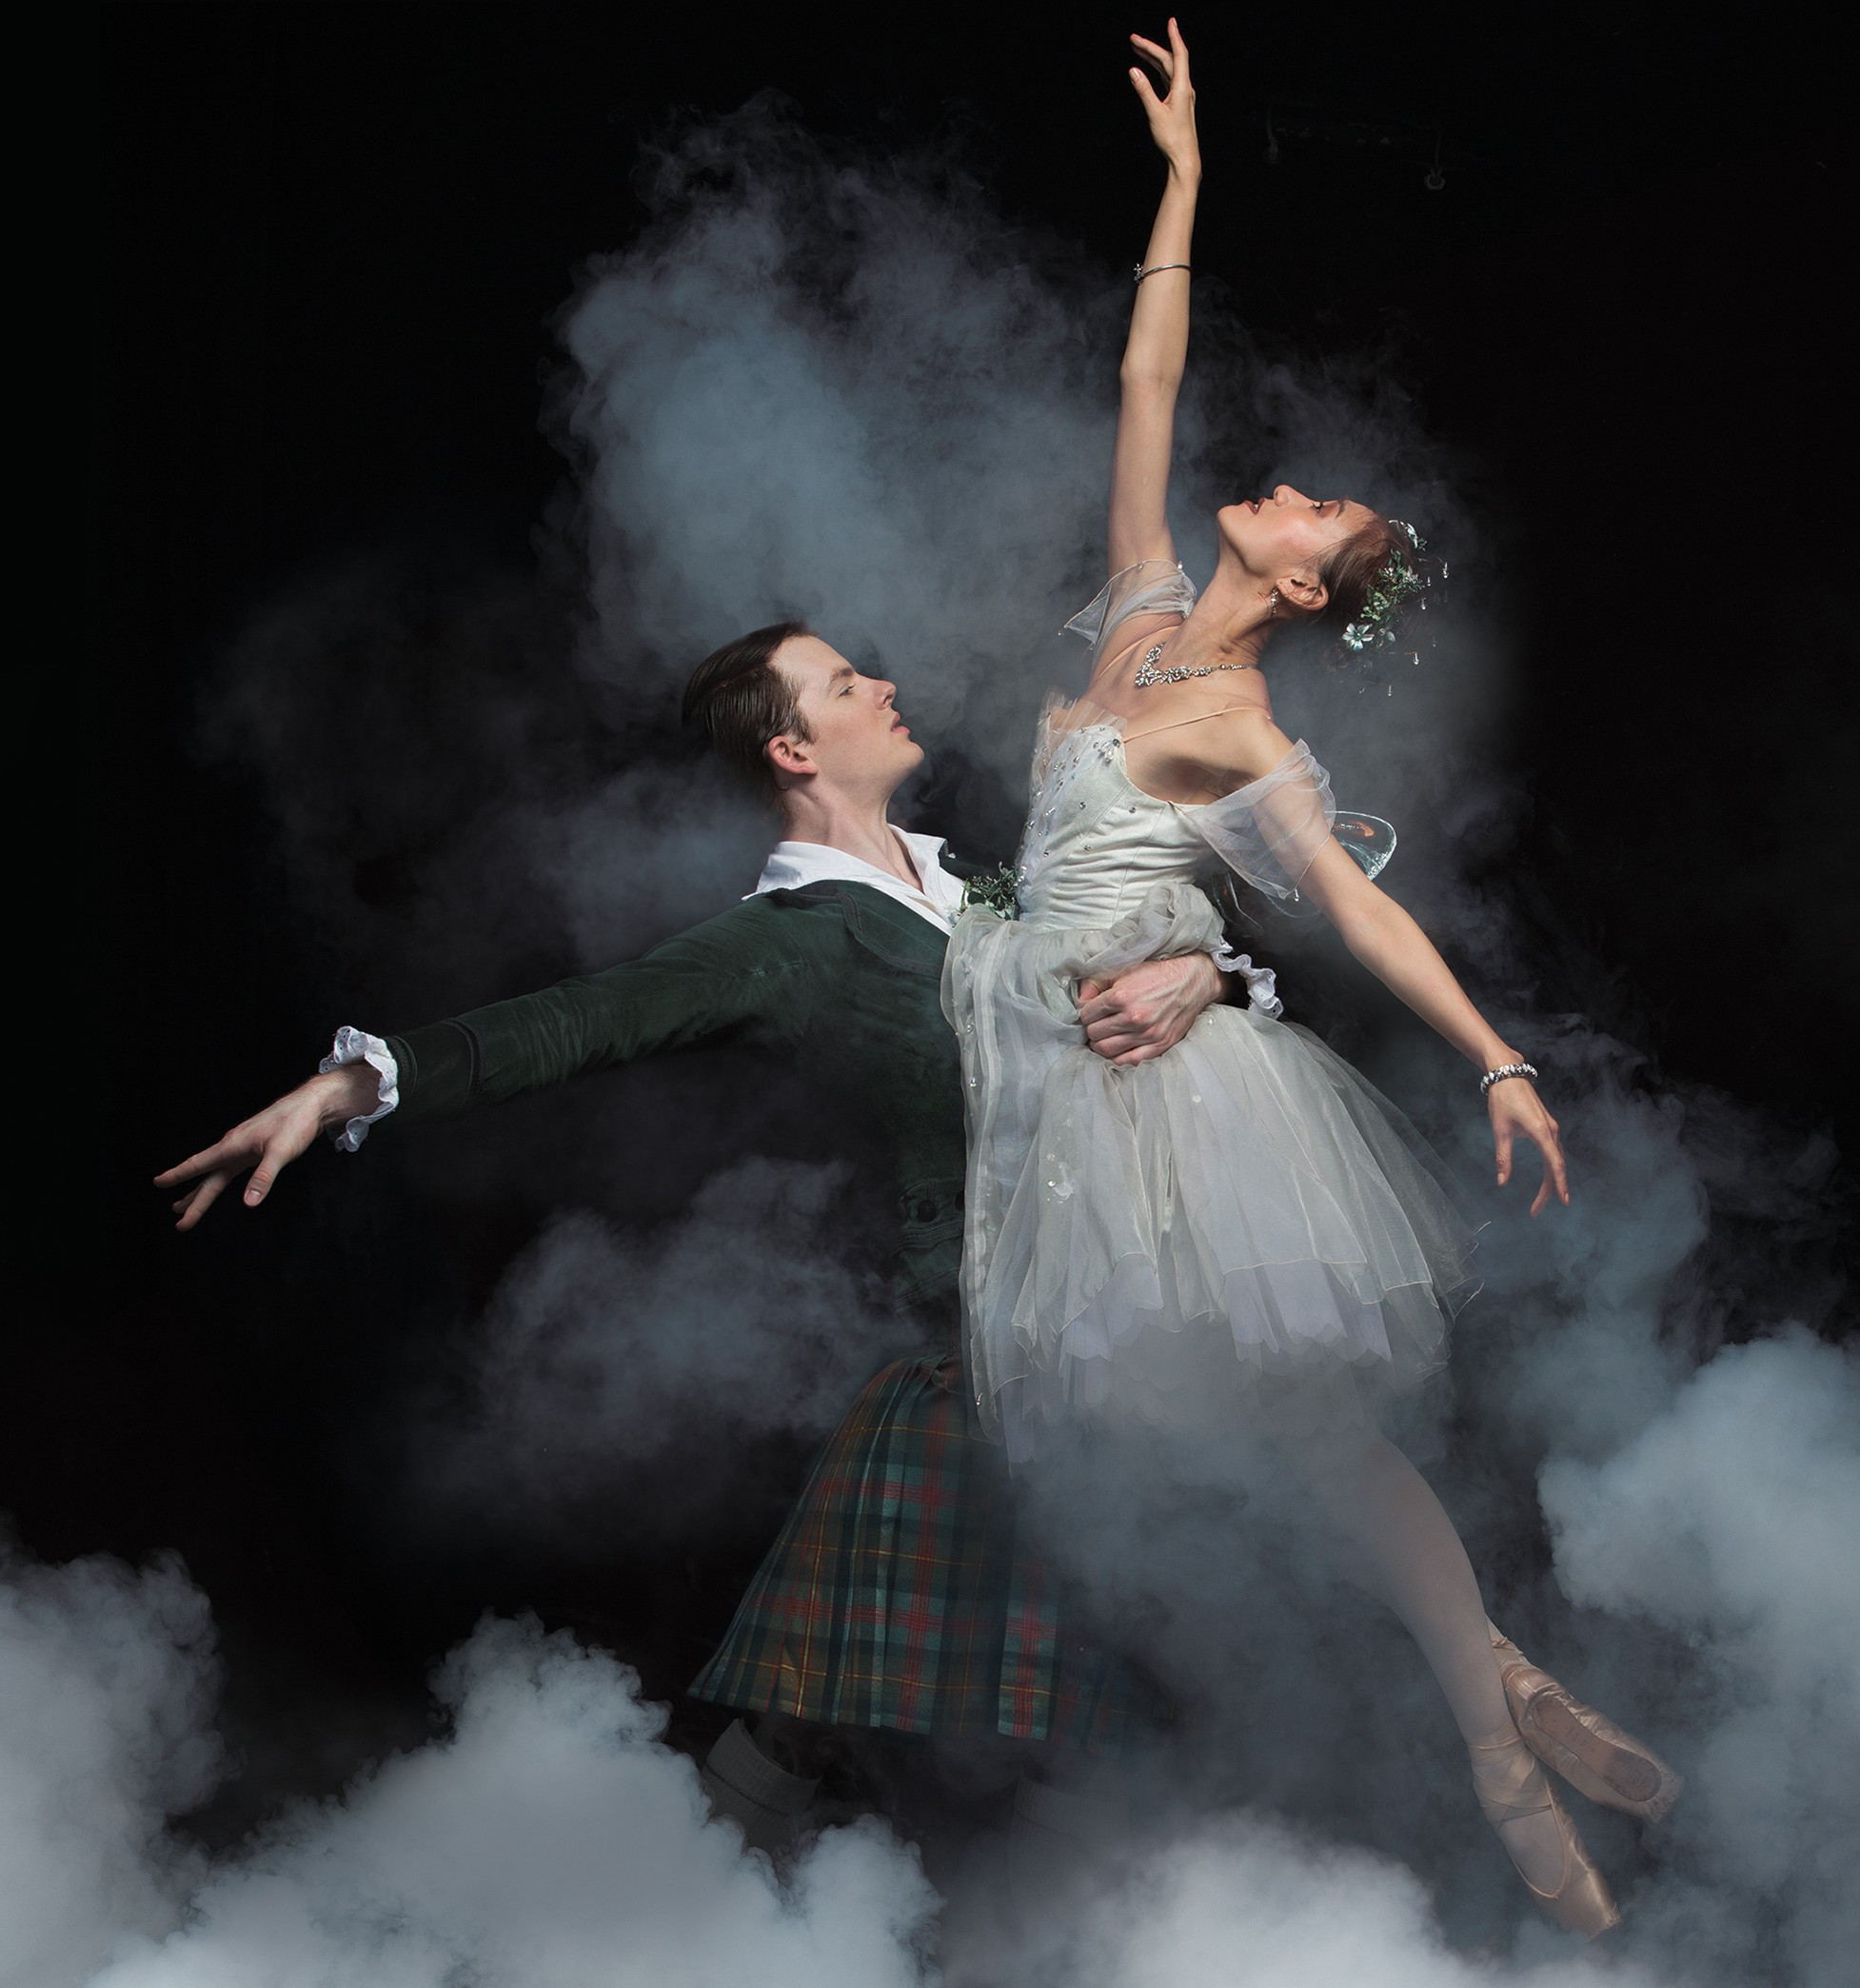 Queensland Ballet's La Sylphide. Promotional image shows Scottish James with his arm around the waist of the delicate, winged Sylphide. They are surrounded by smoke.